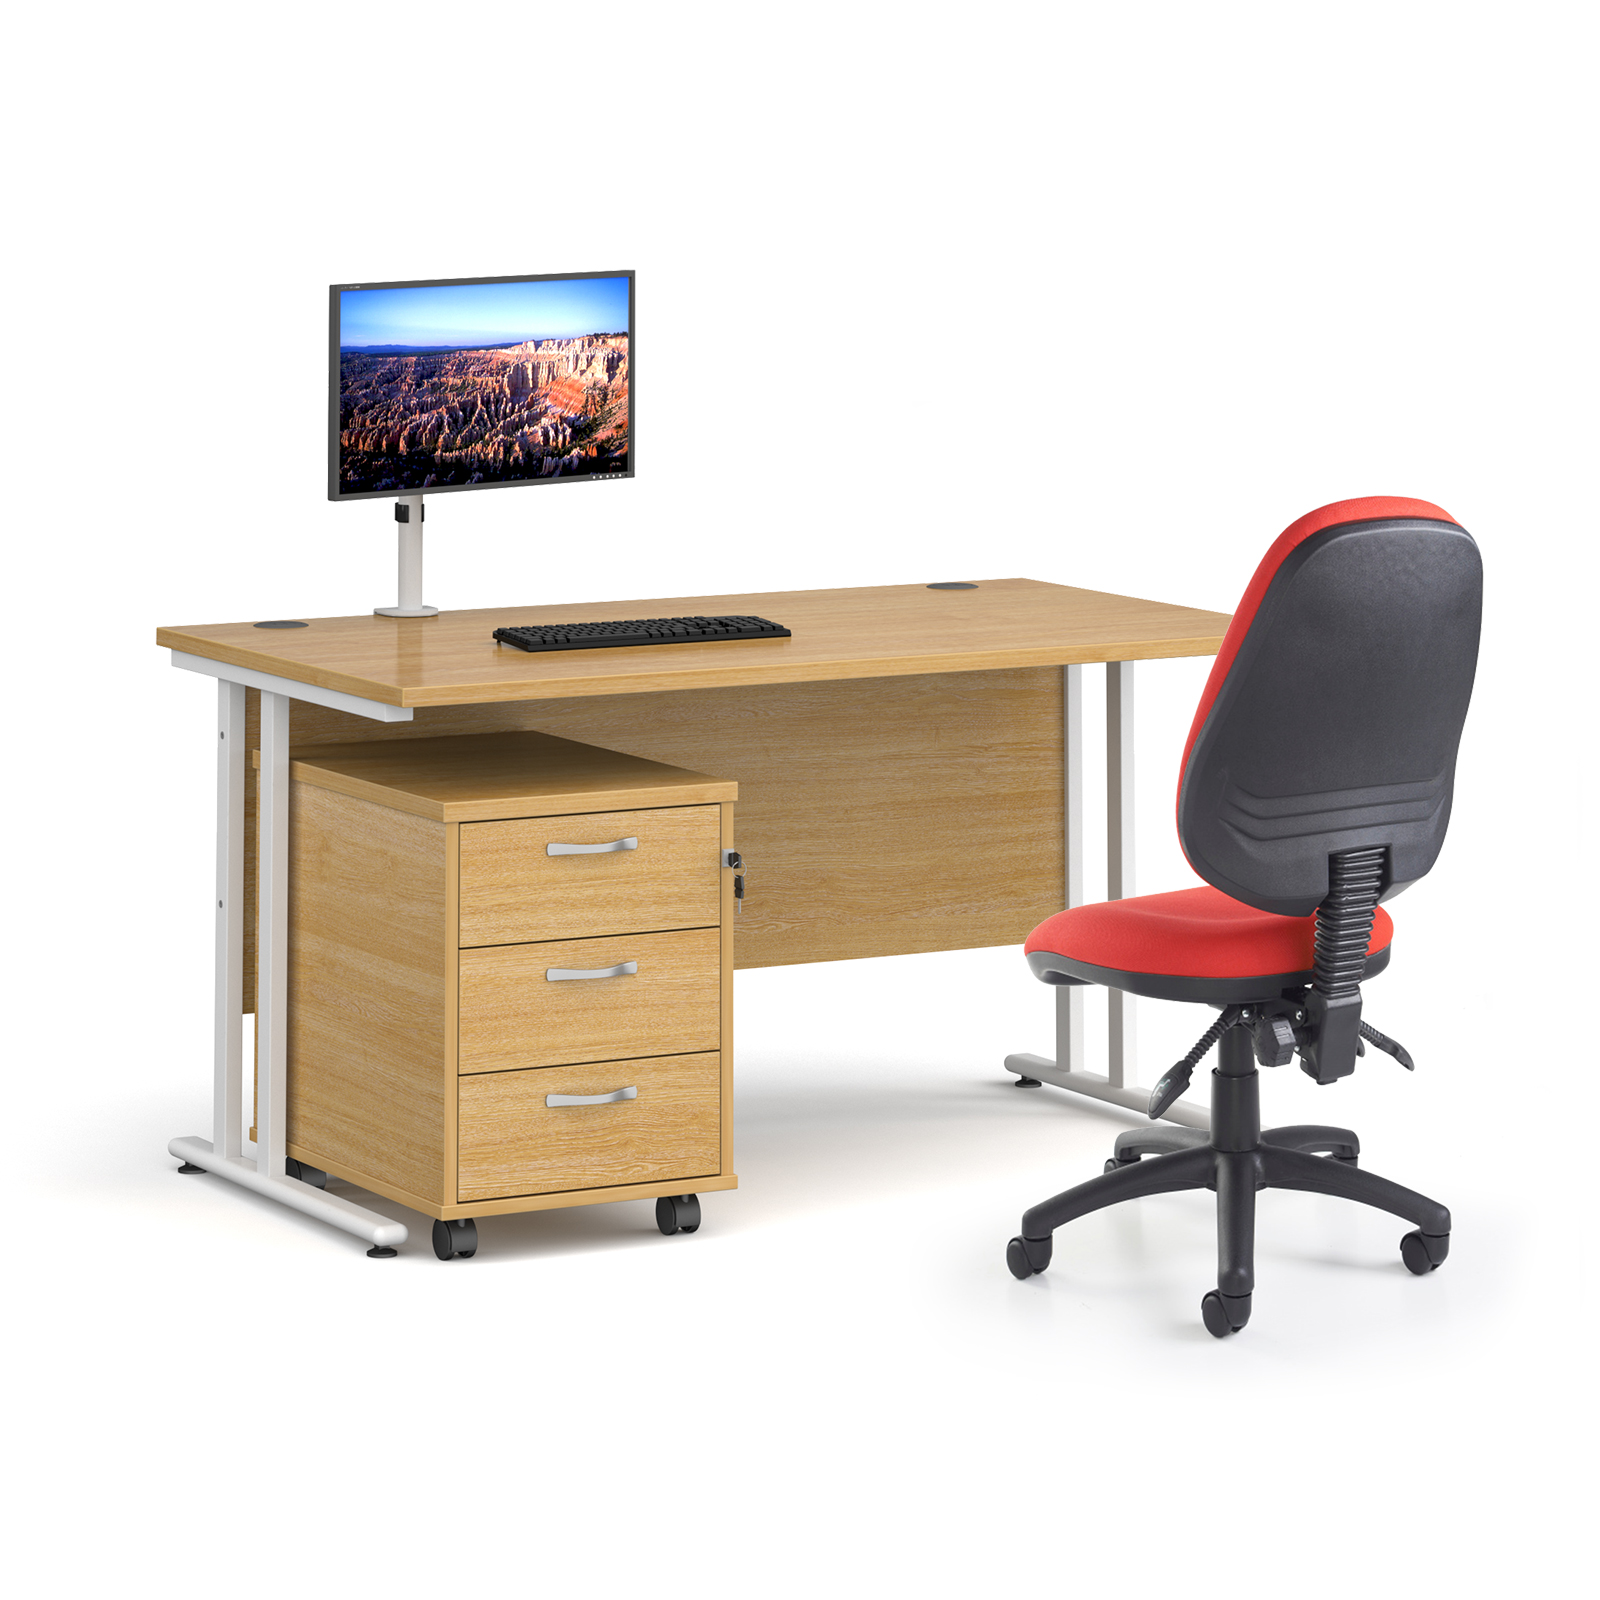 Bundles Bundle deal - Maestro 25 straight 1400mm desk in beech with white frame, 3 drawer pedestal, Luna white monitor arm and Vantage V100 chair in blue